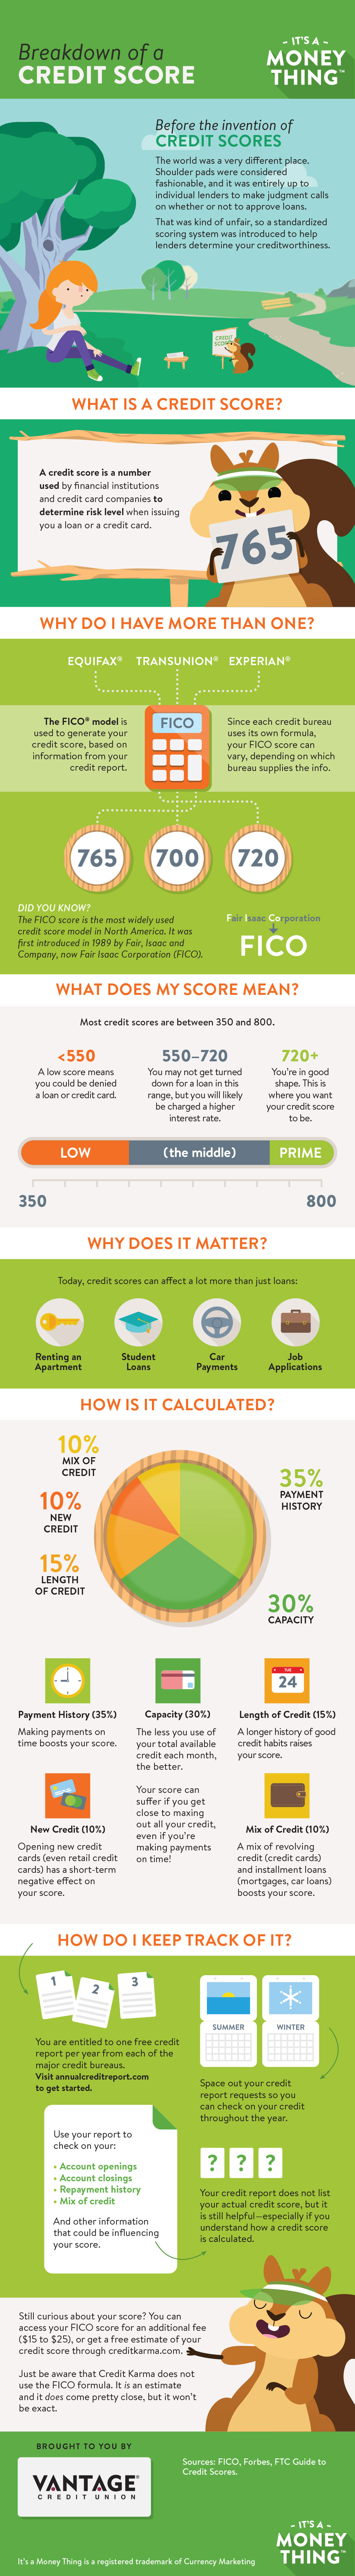 breakdown-of-a-credit-score-infographic